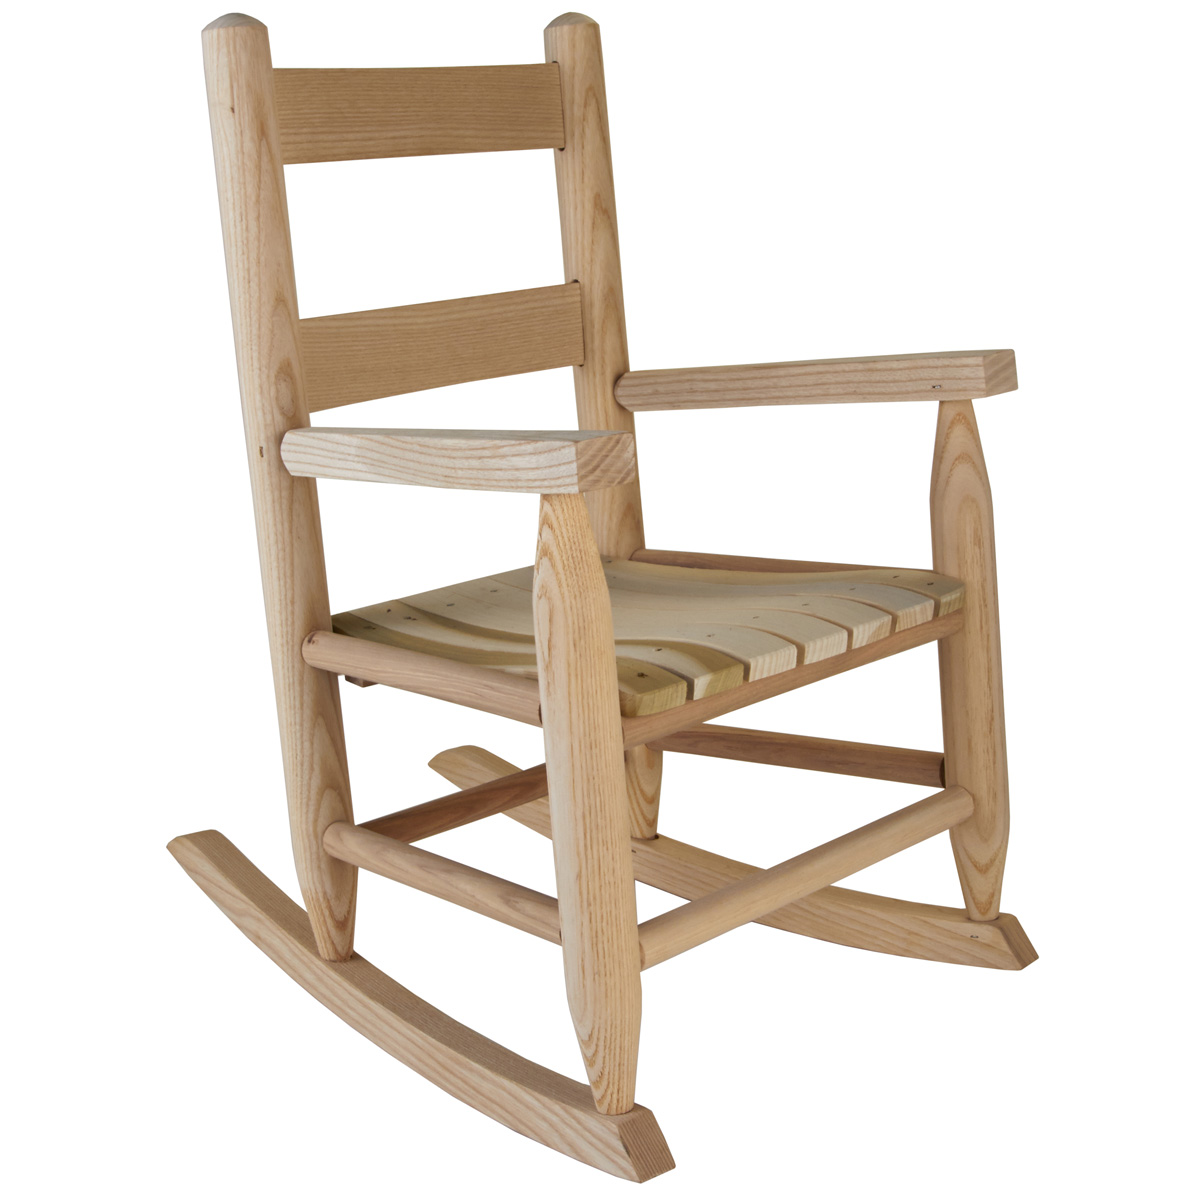 By Rocking Chair Wooden Rocking Chairs For Toddlers Home Ideas